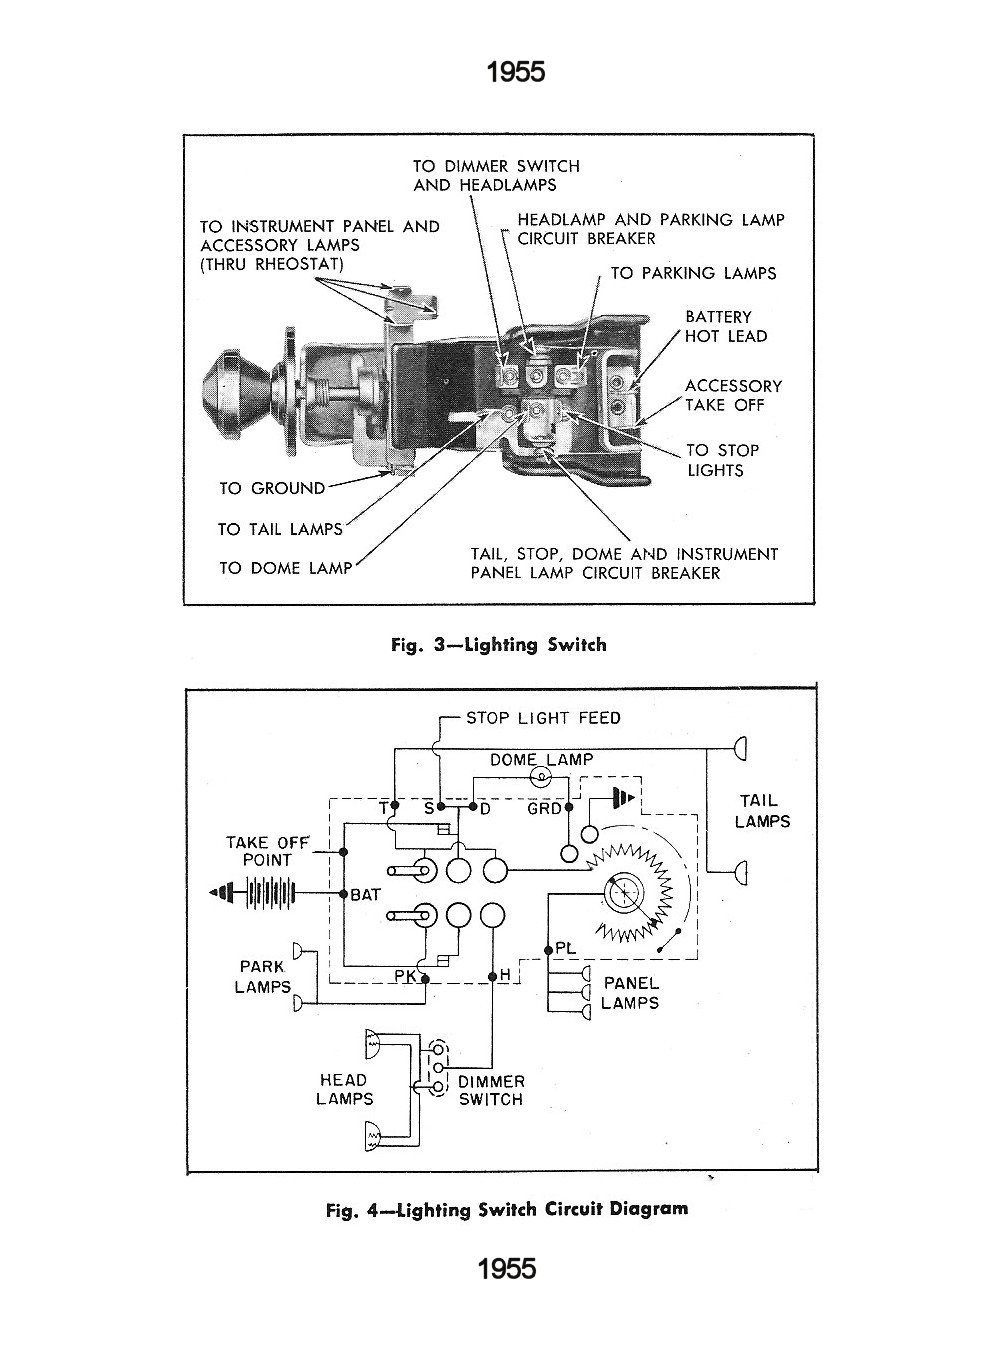 55csm1204a chevy wiring diagrams 1950 chevy truck headlight switch wiring diagram at soozxer.org